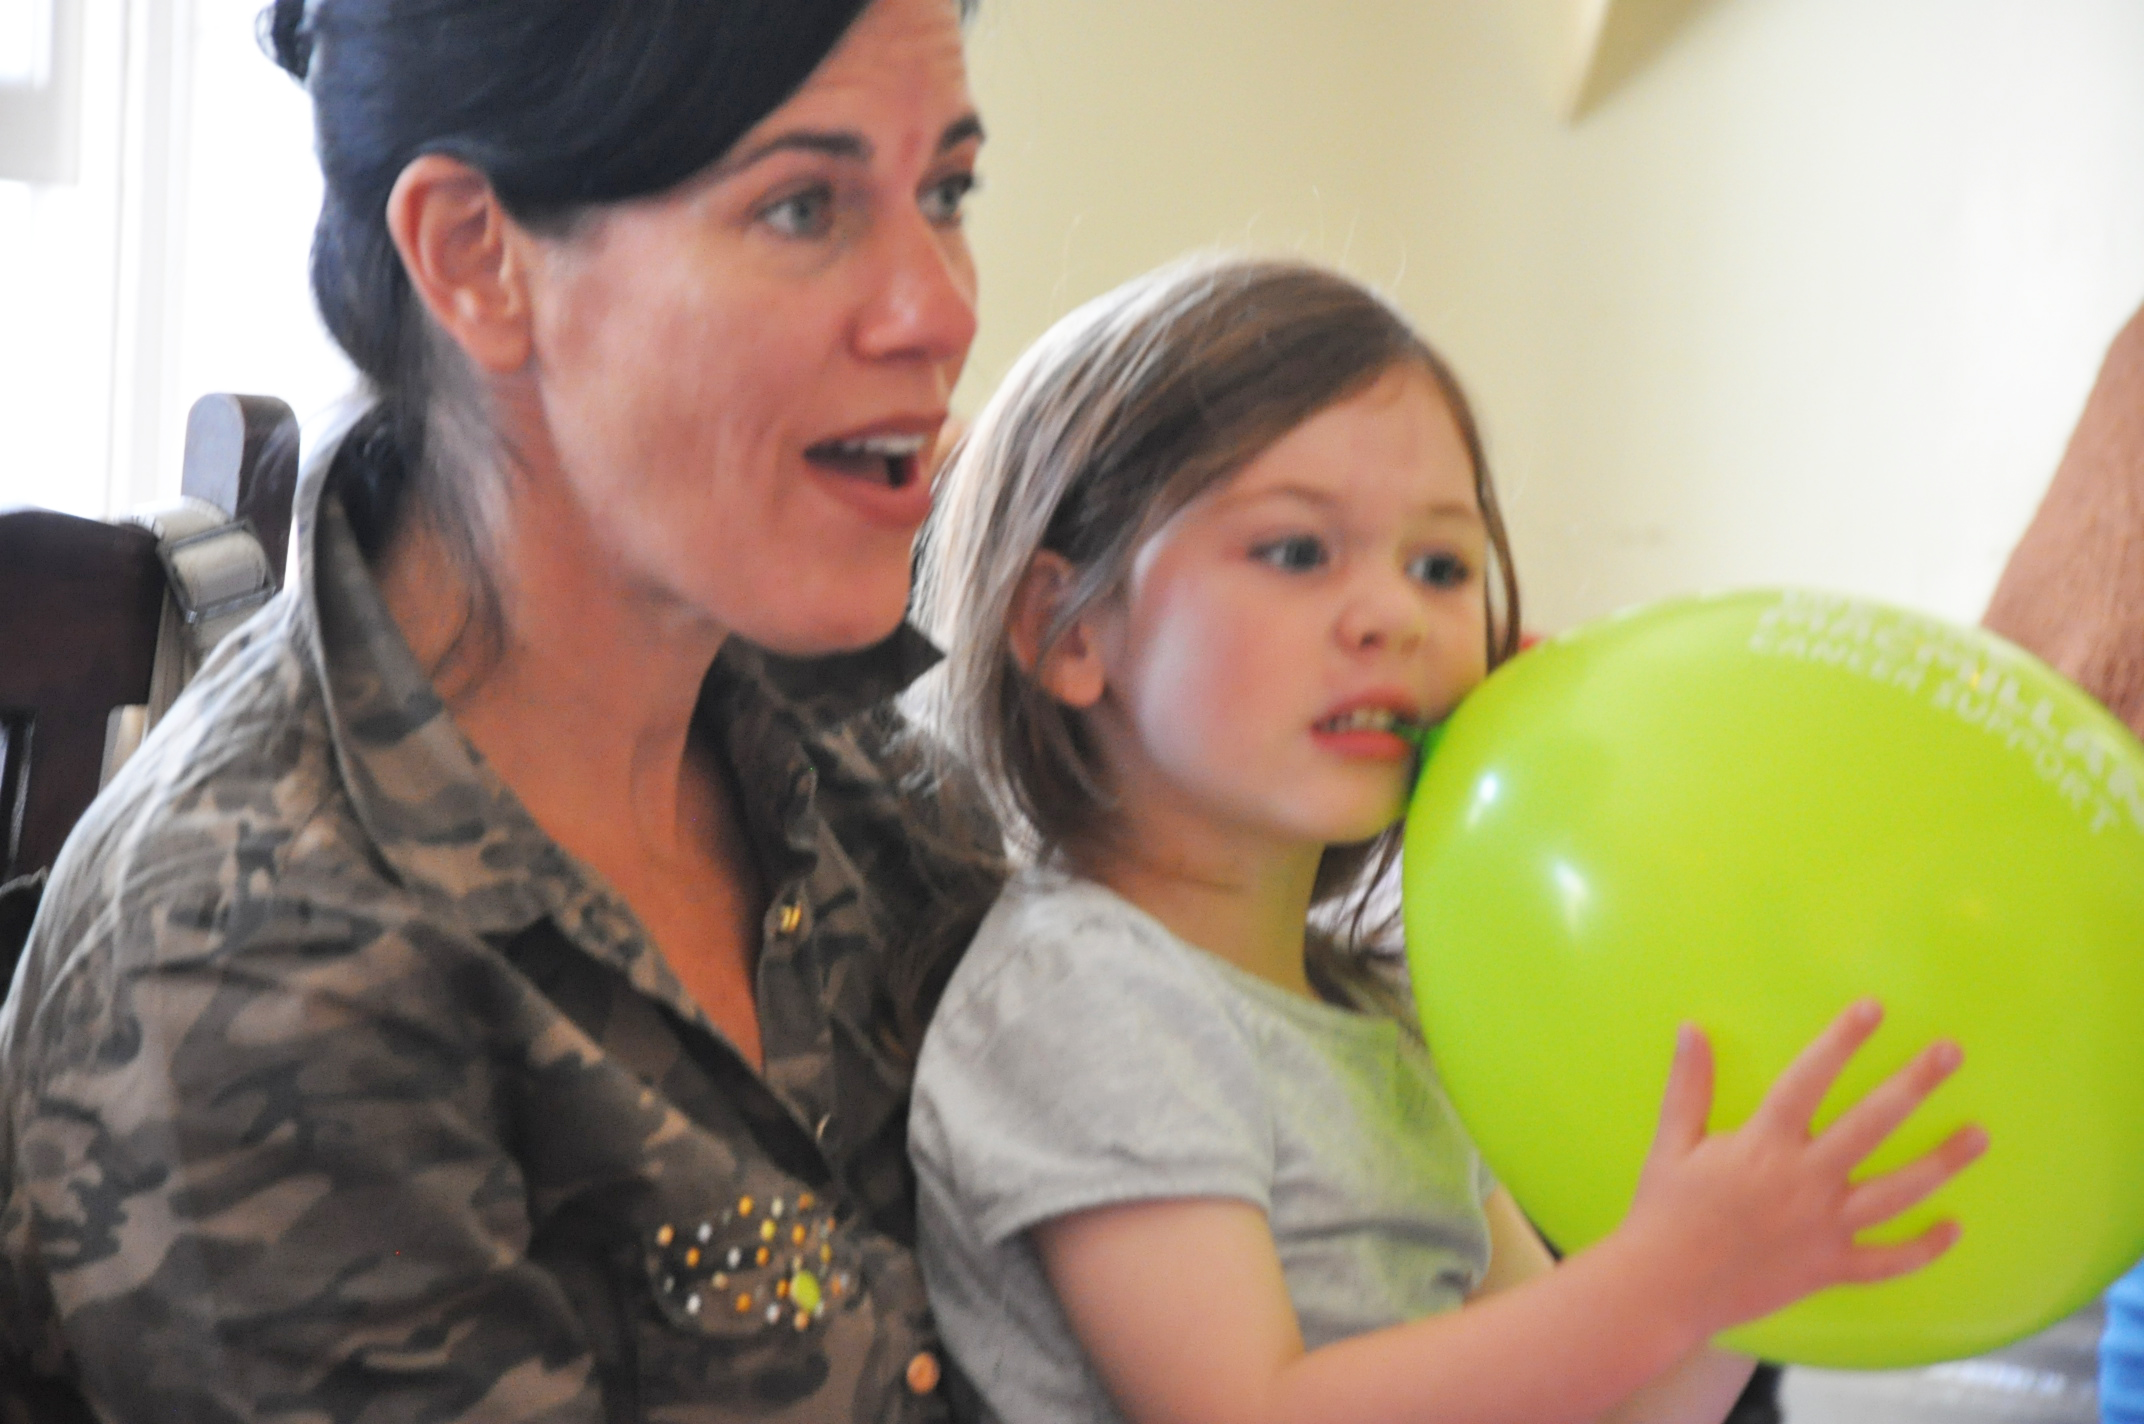 Macmillan provided the balloons which were a bit of a hit!